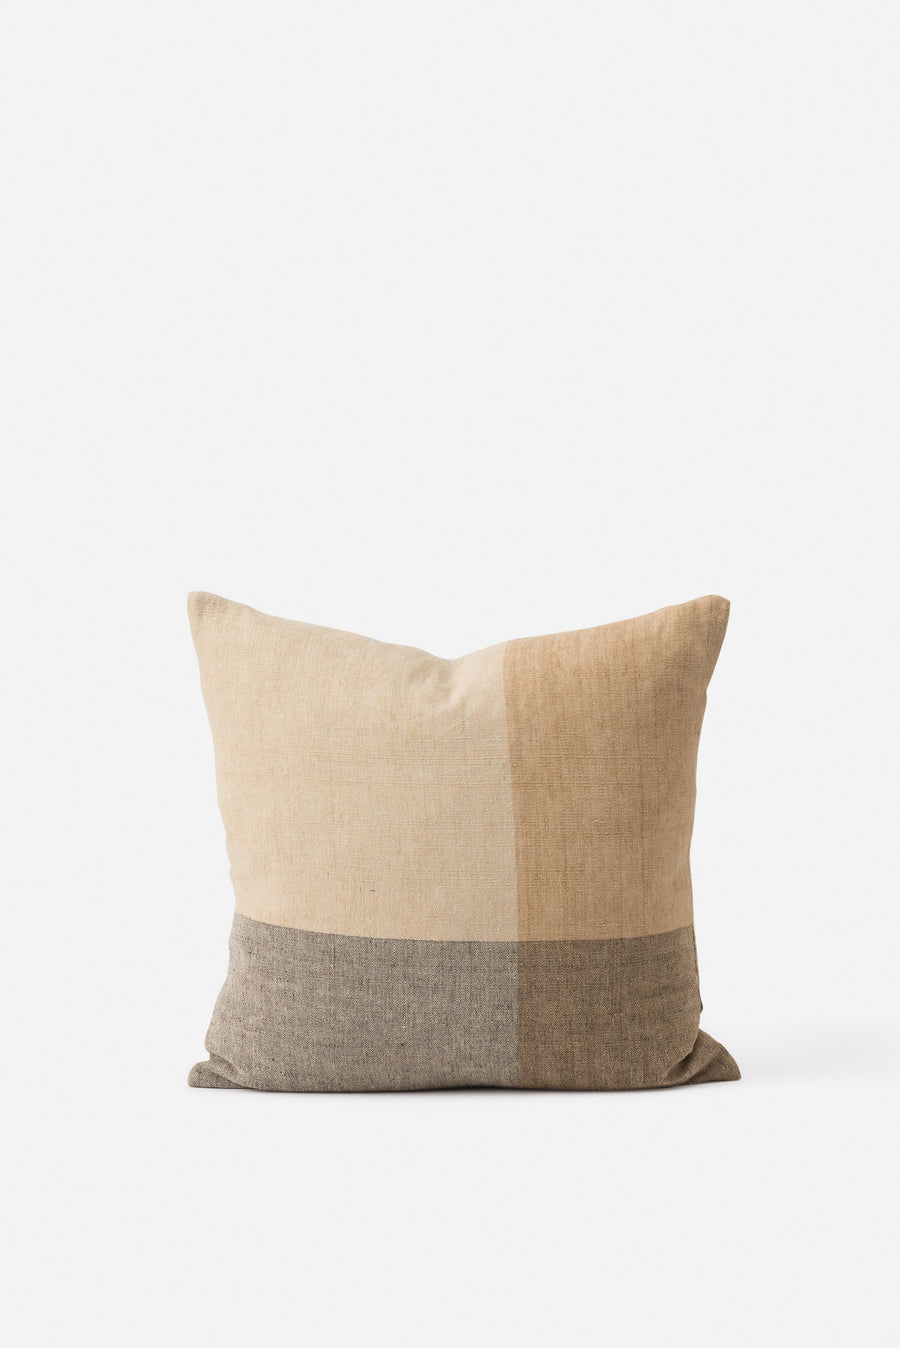 Citta - Henri Handowven Linen Cushion with Feather Insert